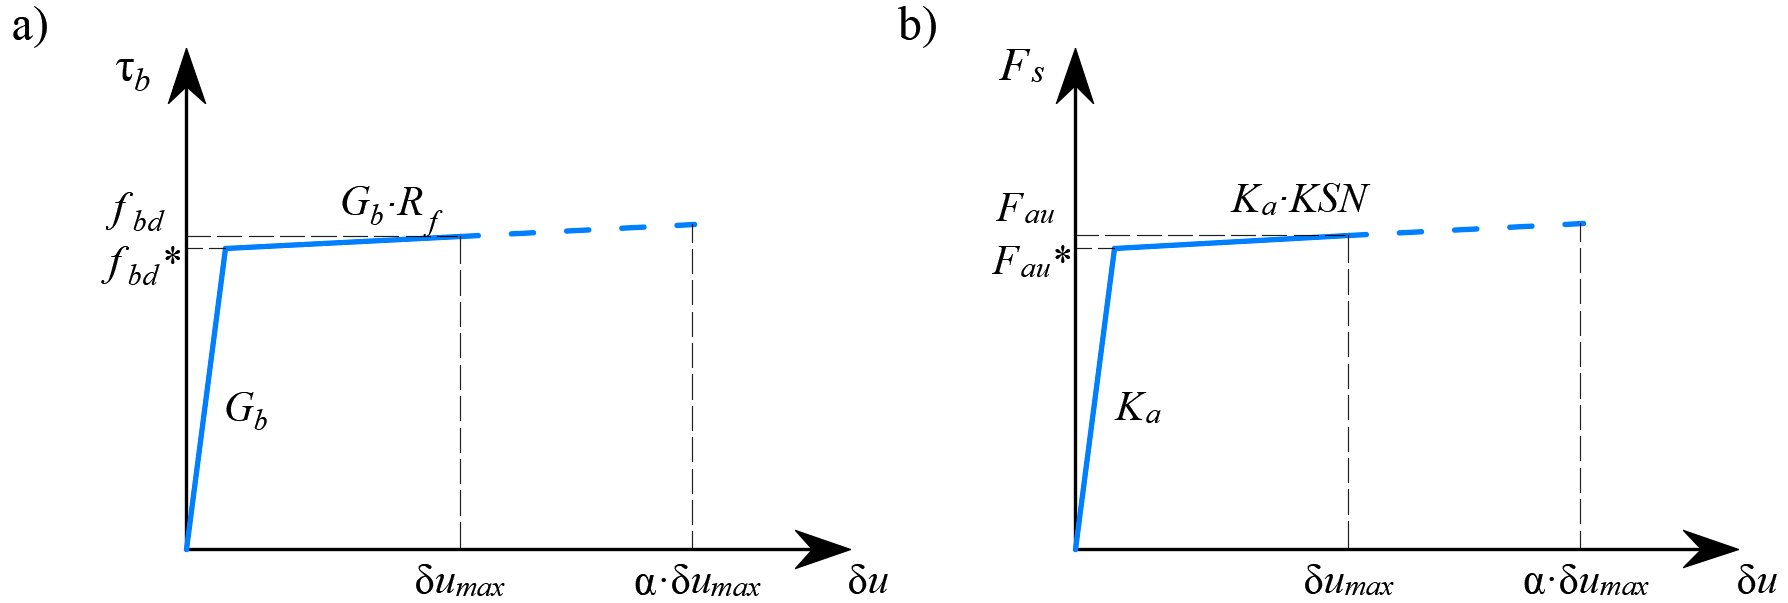 Fig. 21	 Constitutive relationship of bond and anchorage elements used for anchorage length verification: (a) bond shear stress slip response of a bond element; (b) force-displacement response of an anchorage element.